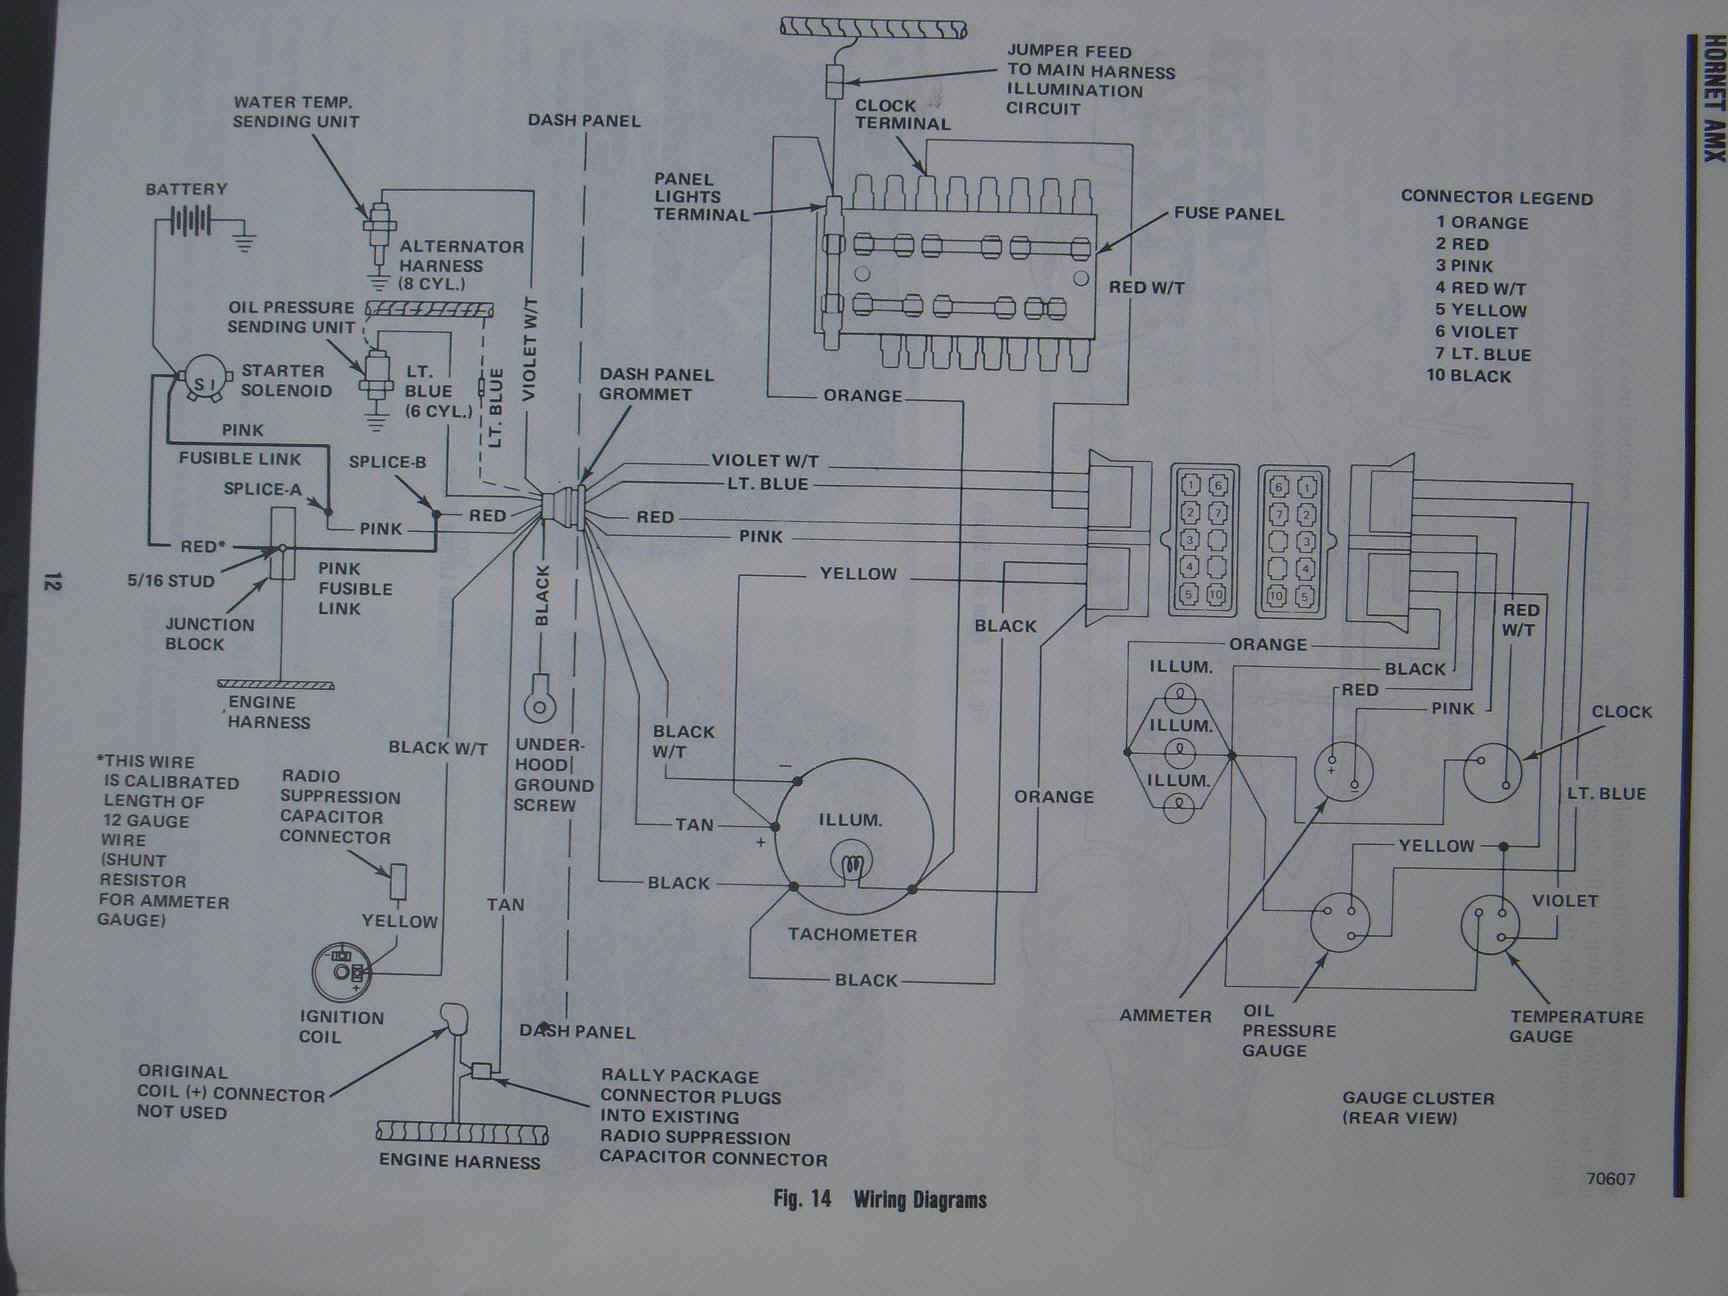 hight resolution of 1971 amc gremlin wiring diagram wiring diagram blogs rh 17 9 1 restaurant freinsheimer hof de